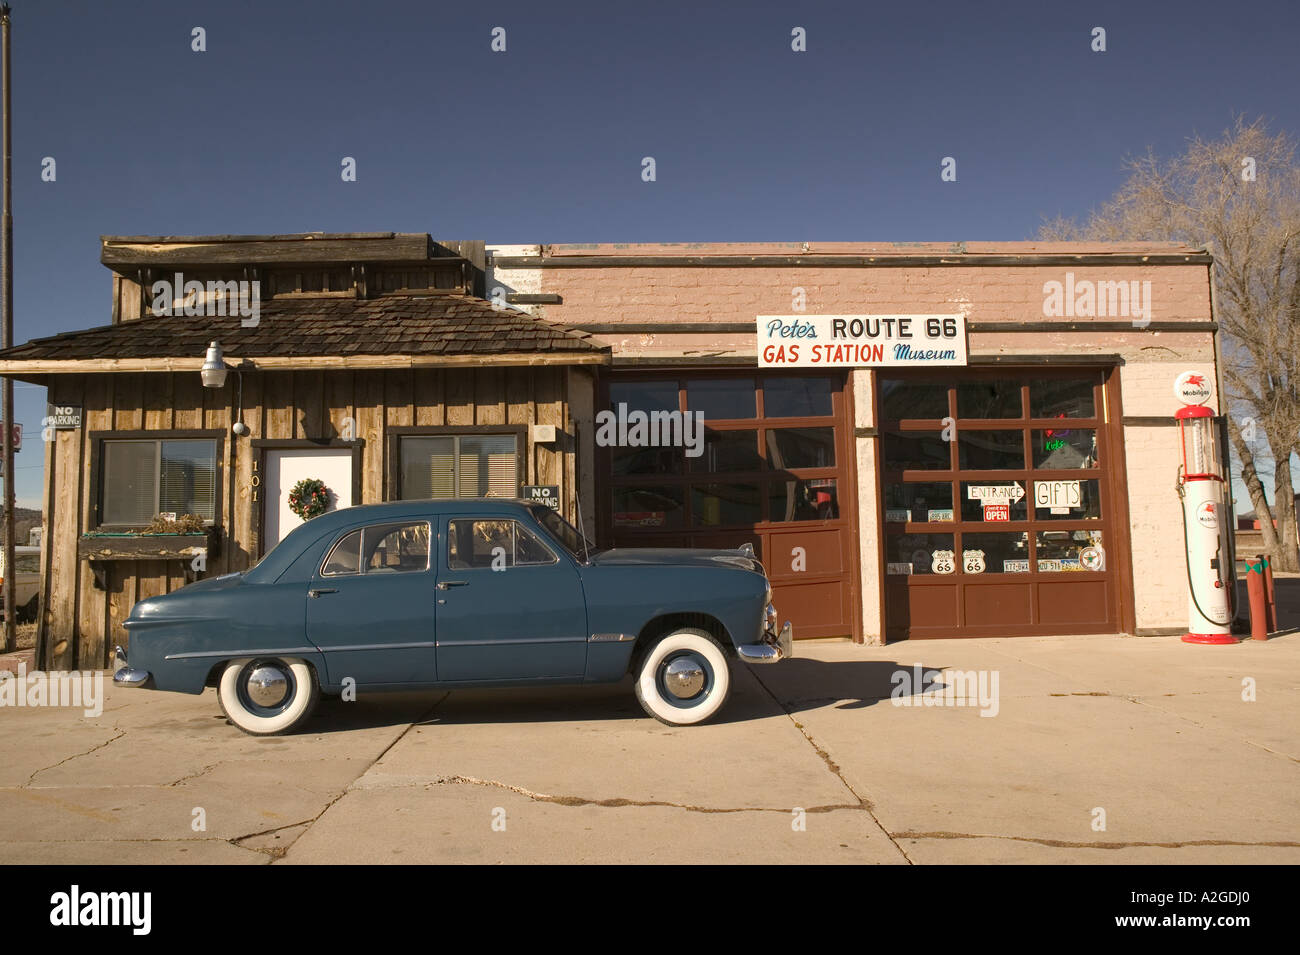 Usa arizona williams old garage 1950 ford stock for Garage route 66 metz